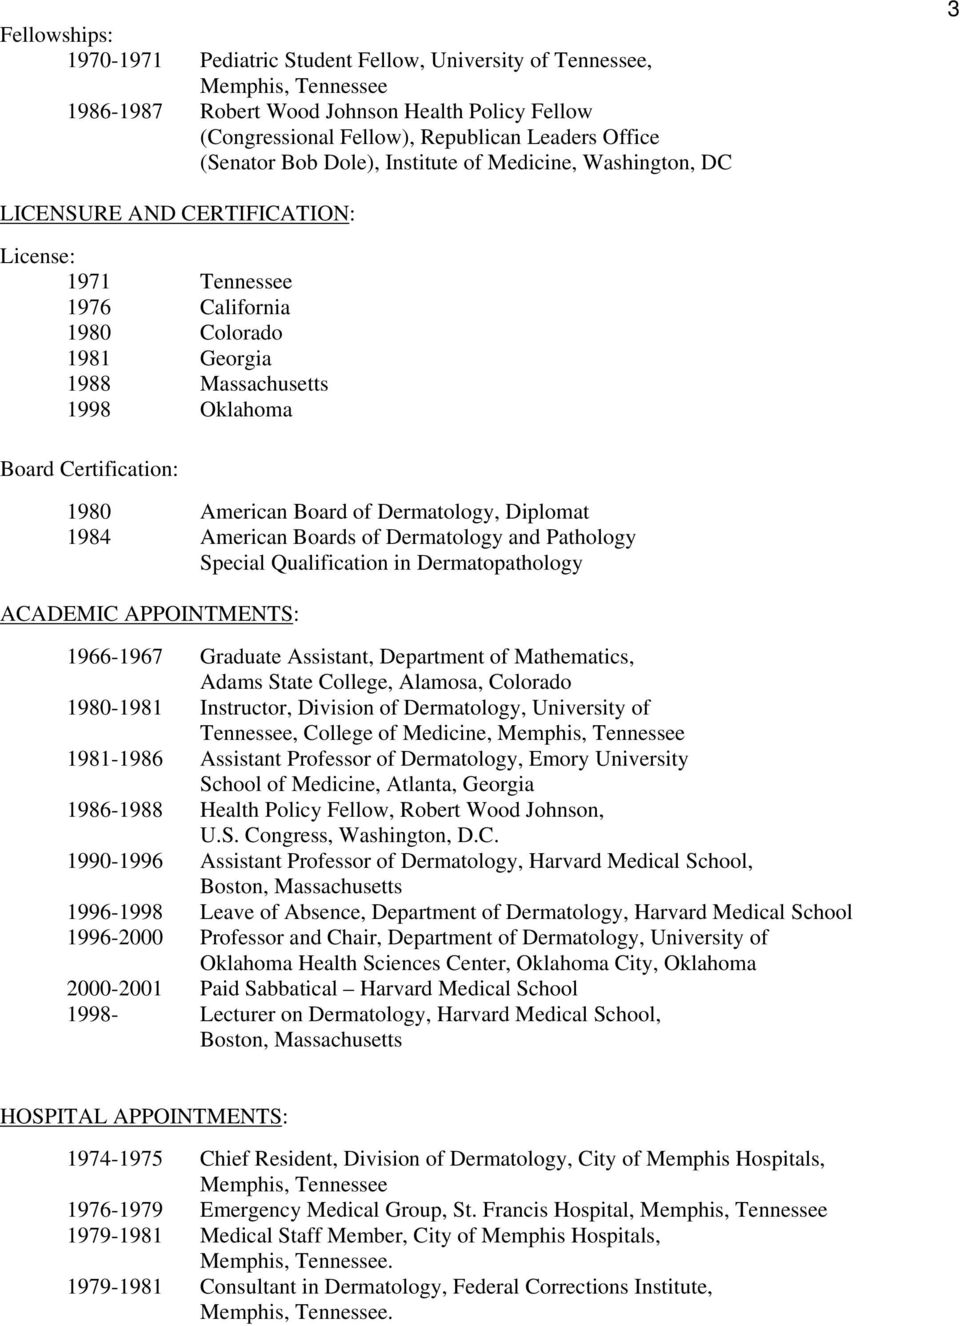 Certification: 1980 American Board of Dermatology, Diplomat 1984 American Boards of Dermatology and Pathology Special Qualification in Dermatopathology ACADEMIC APPOINTMENTS: 1966-1967 Graduate